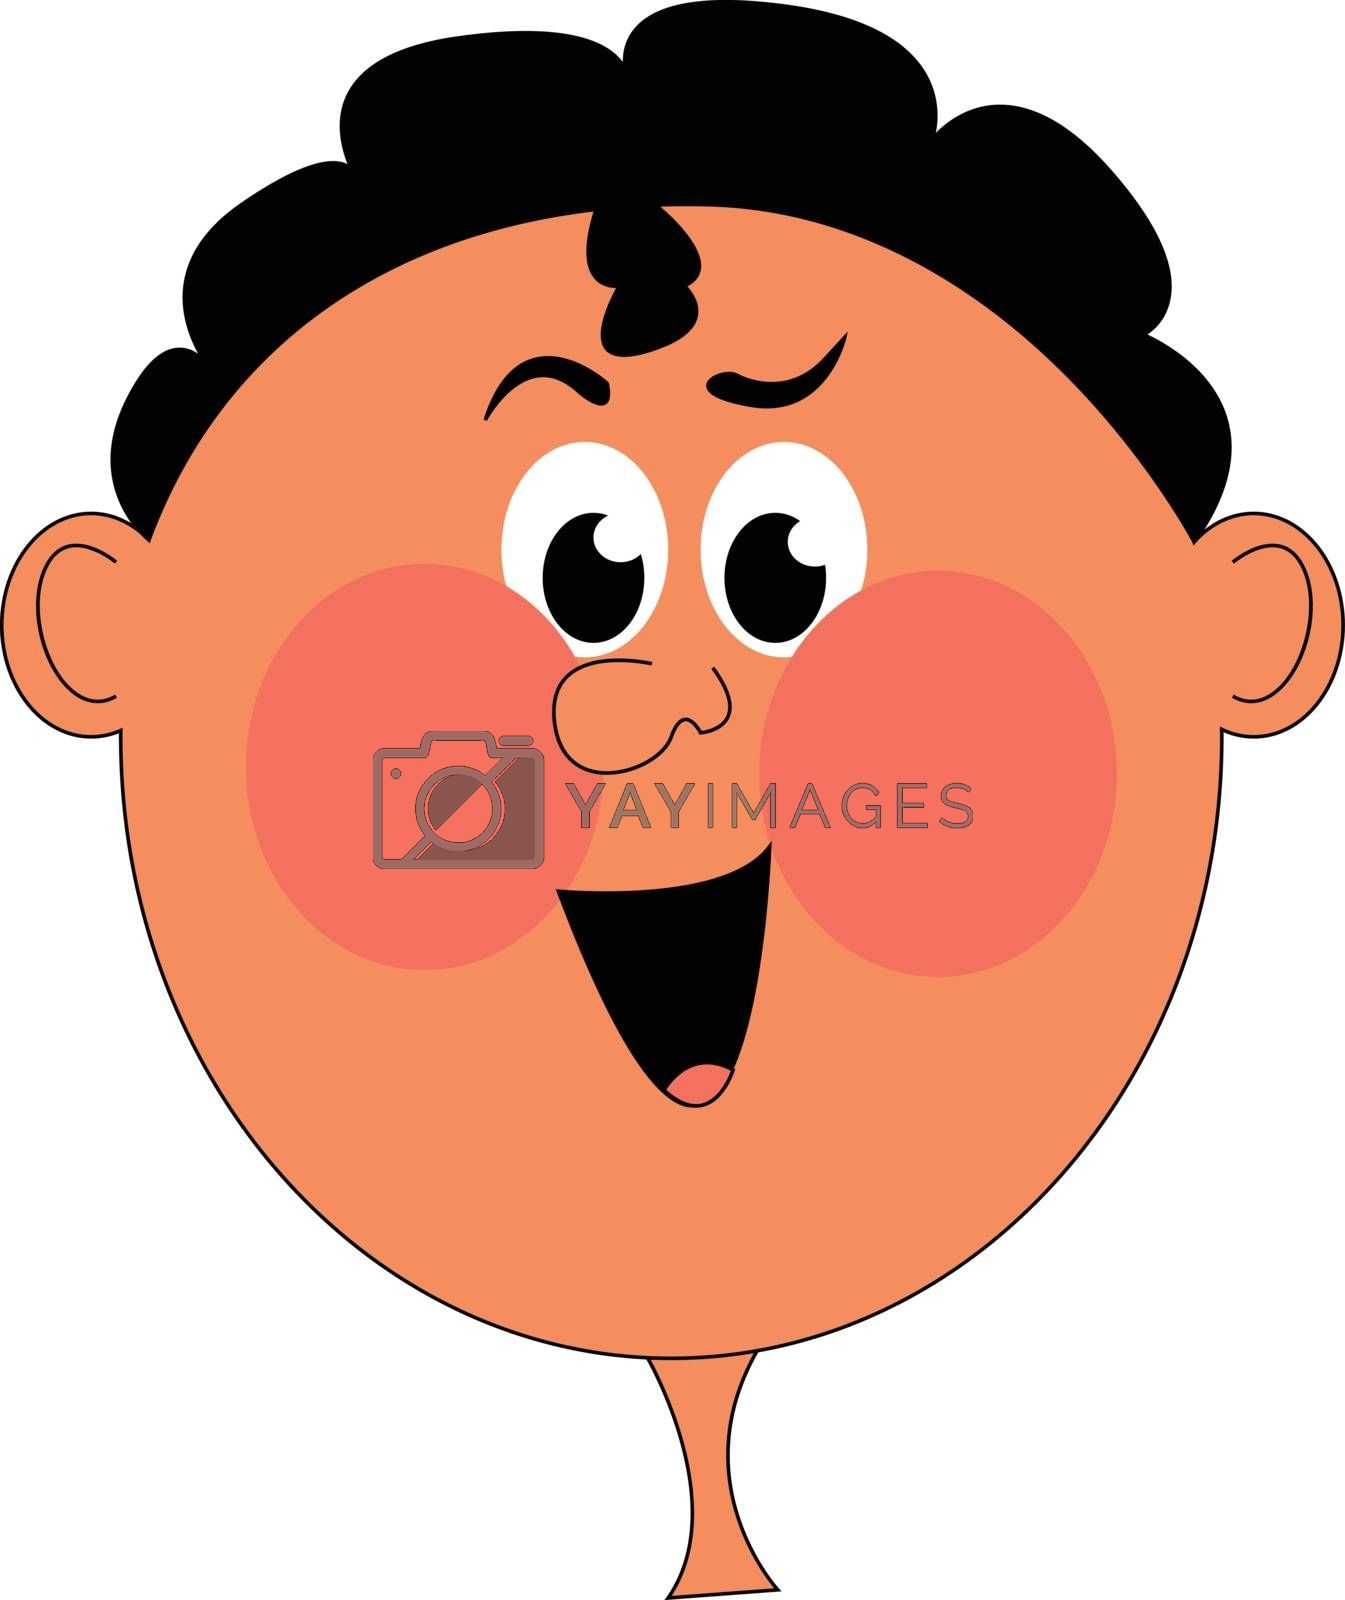 Royalty free image of Clipart of a boy with red cheeks vector or color illustration by Morphart